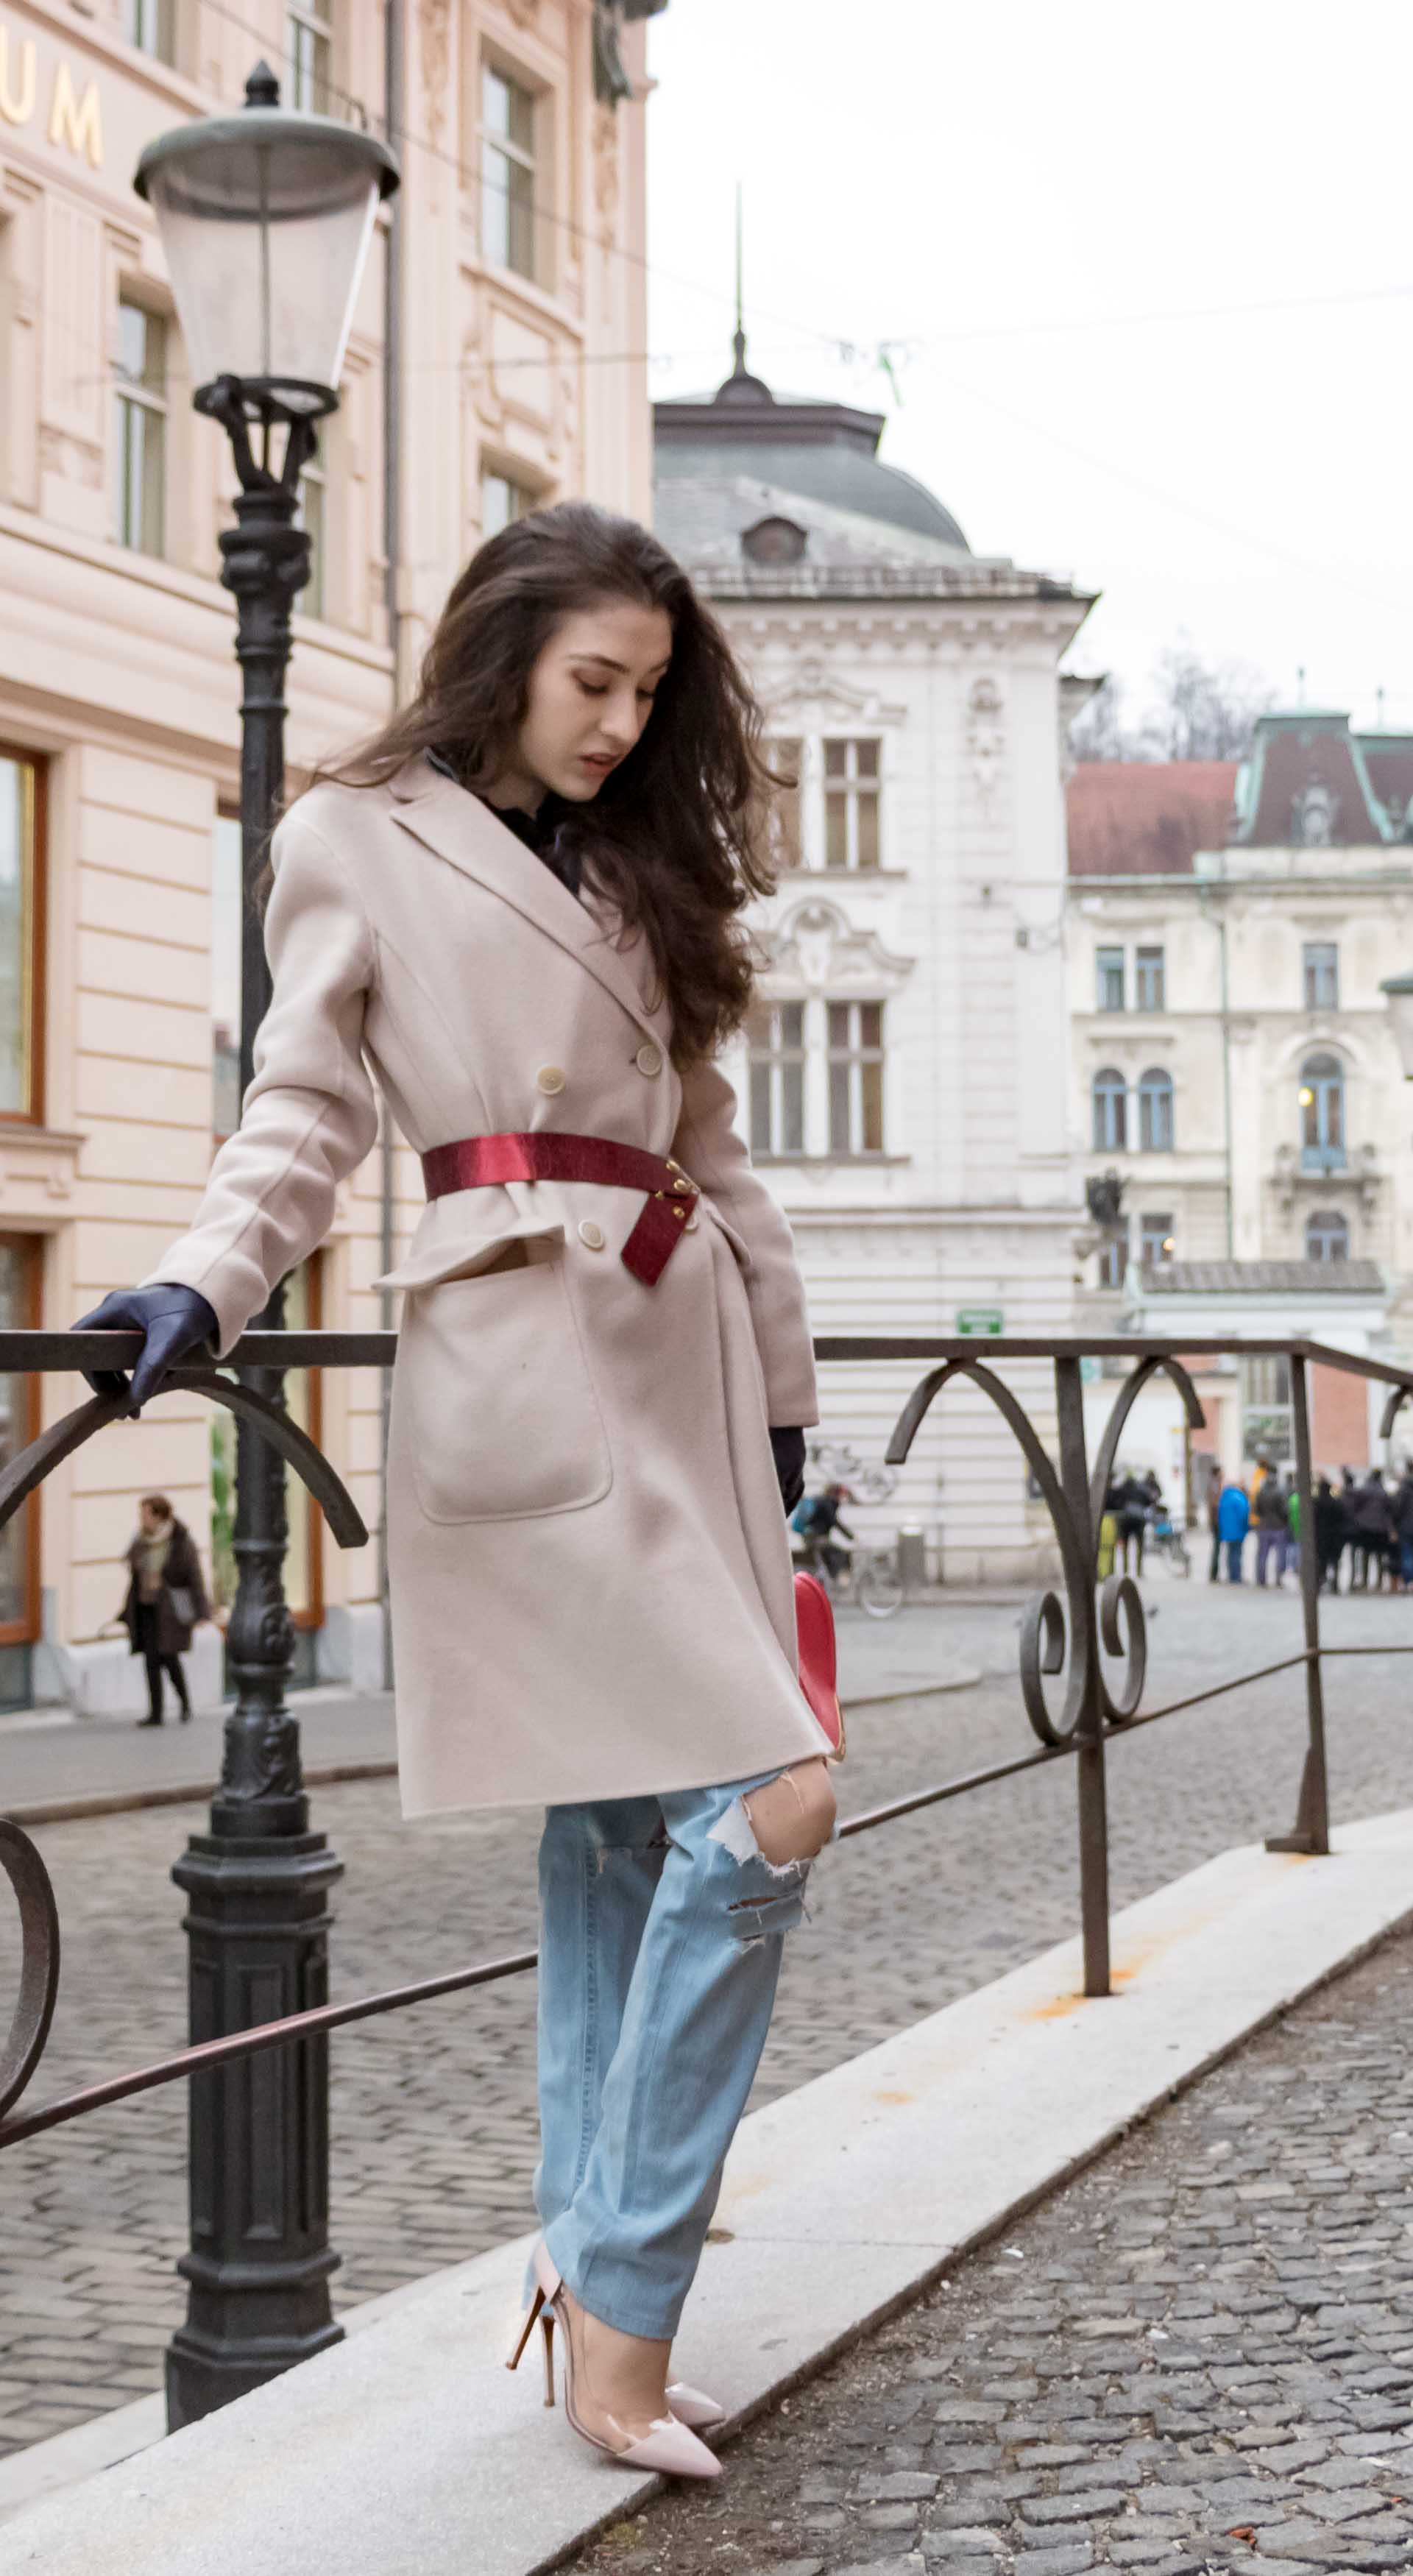 Fashion Blogger Veronika Lipar of Brunette from Wall Street wearing ripped blue Levi's jeans, off-white double breasted Weekend Maxmara coat, red dangling belt, blush Gianvito Rossi plexi pumps, See by Chloe pink top handle bag, blue leather gloves leaning on the fence on the street of Ljubljana